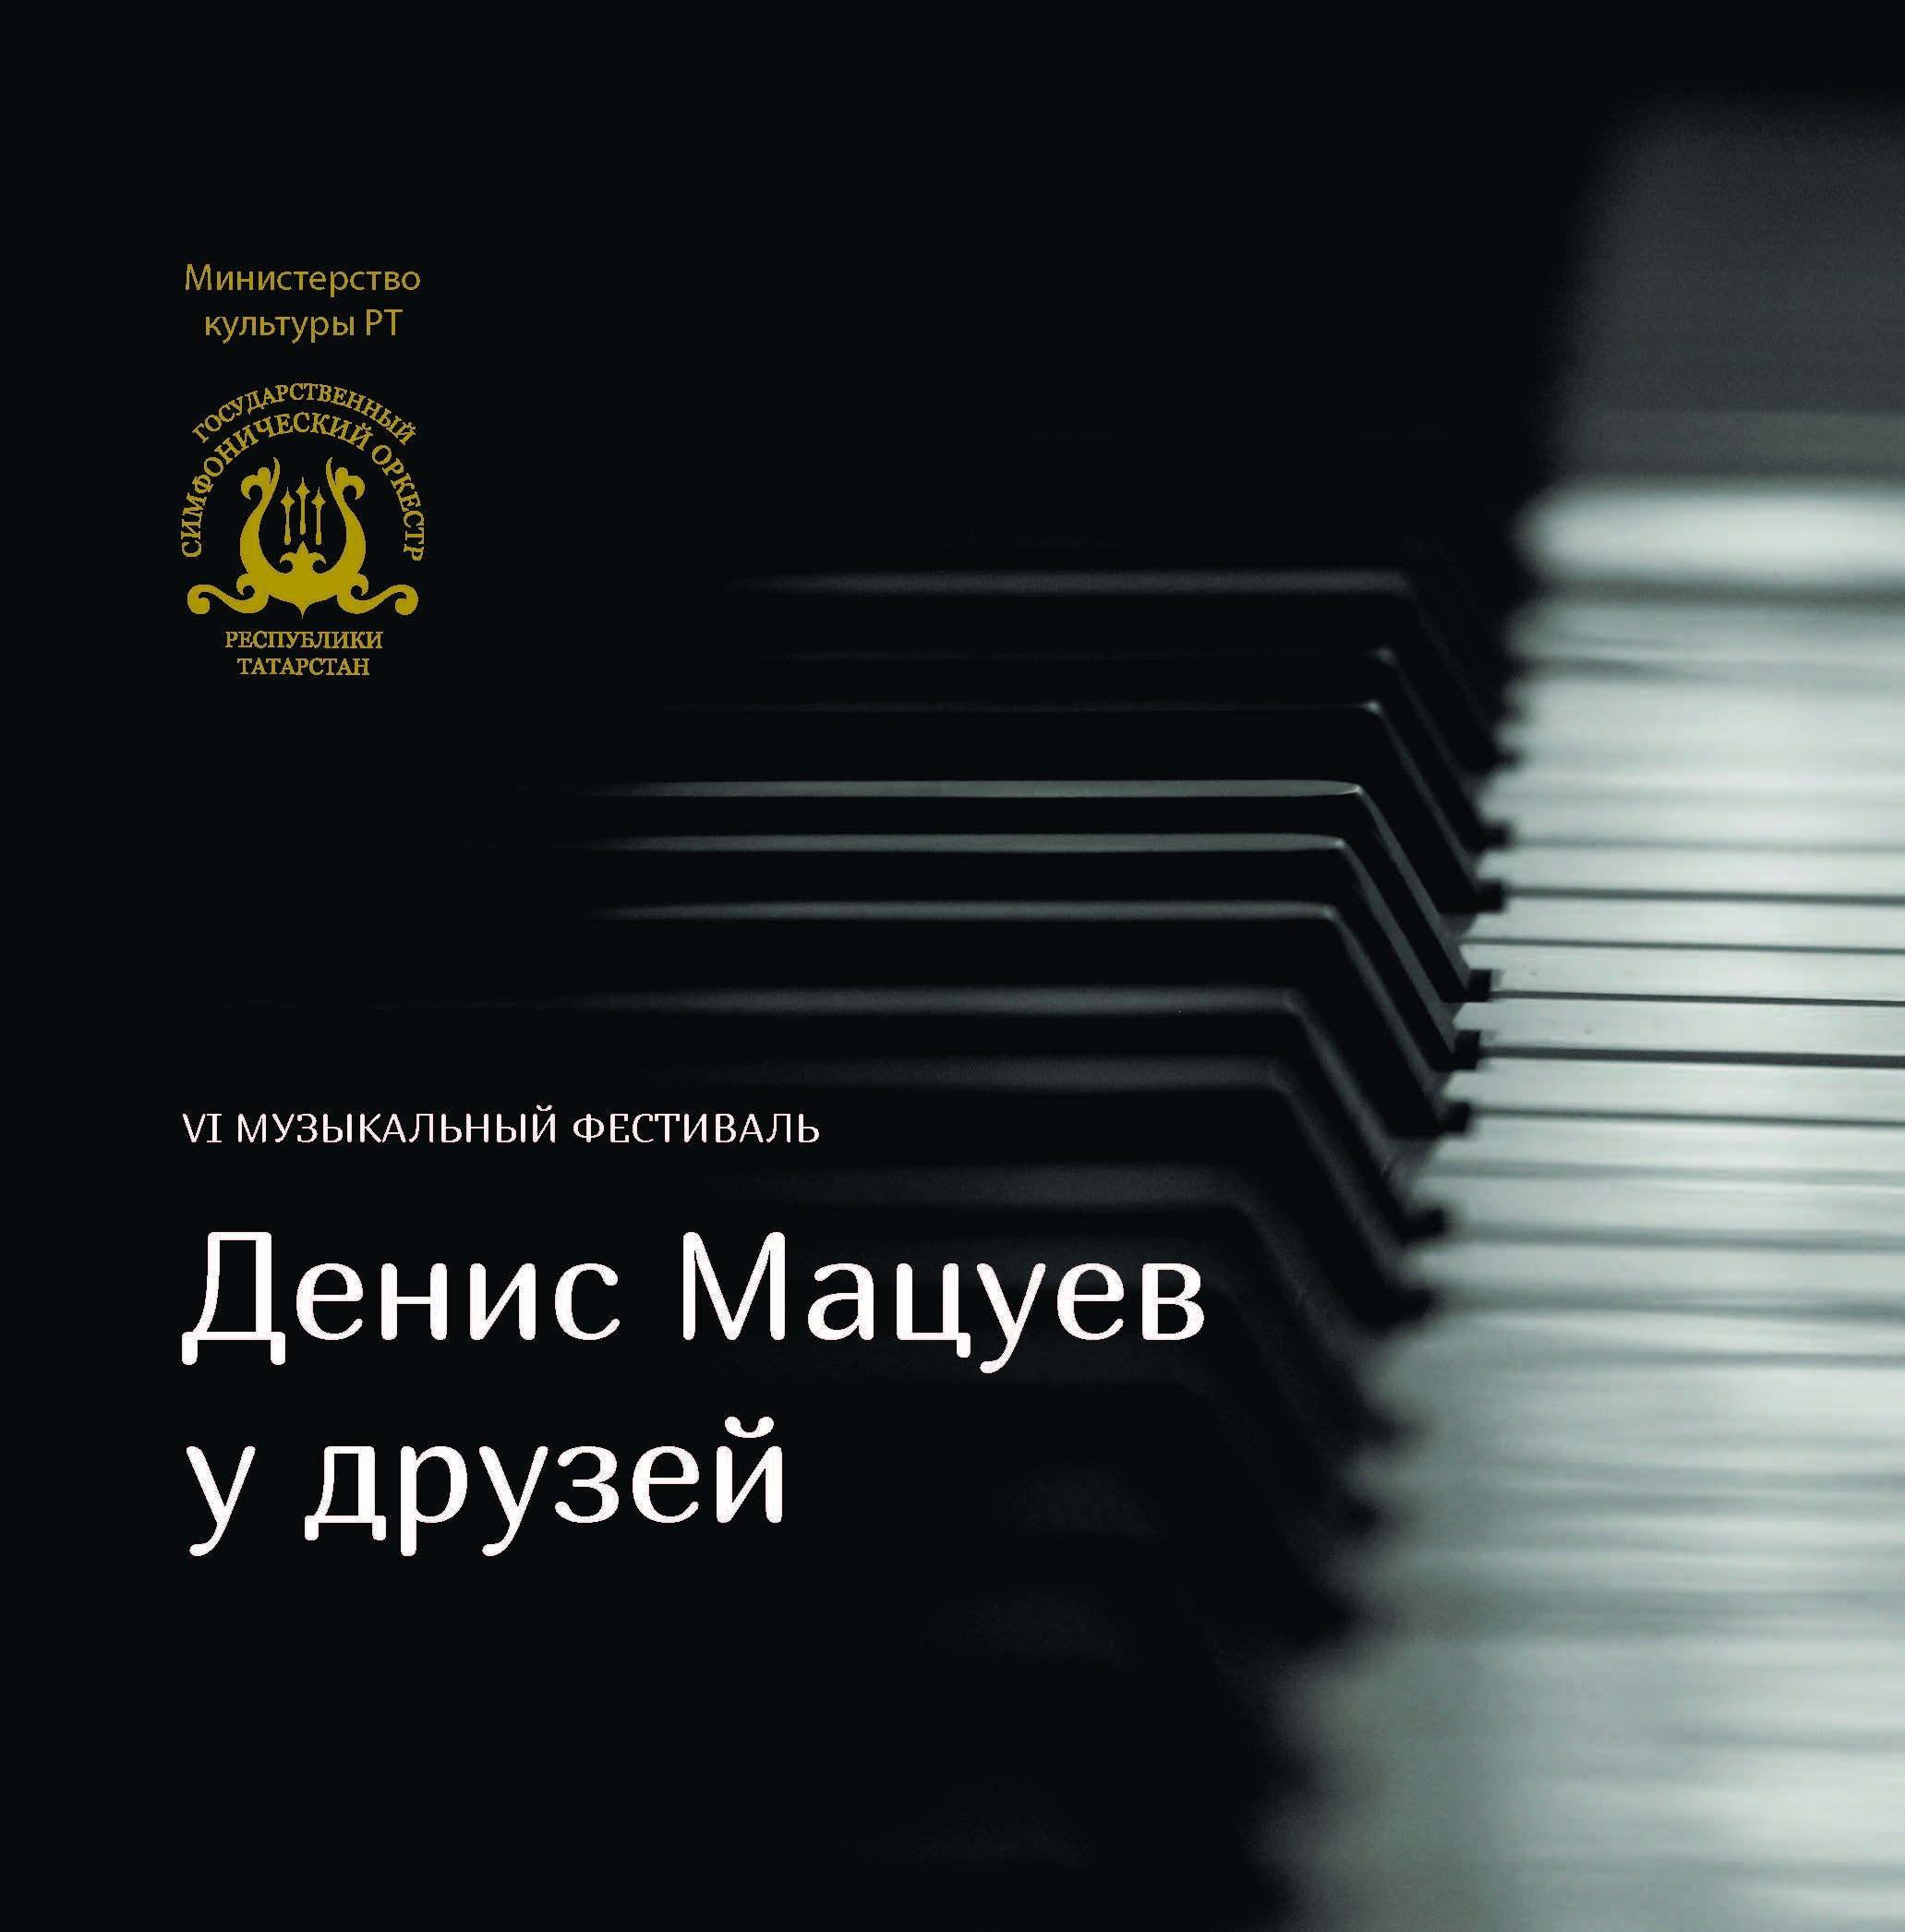 VI Denis Matsuev Meets Friends Music Festival